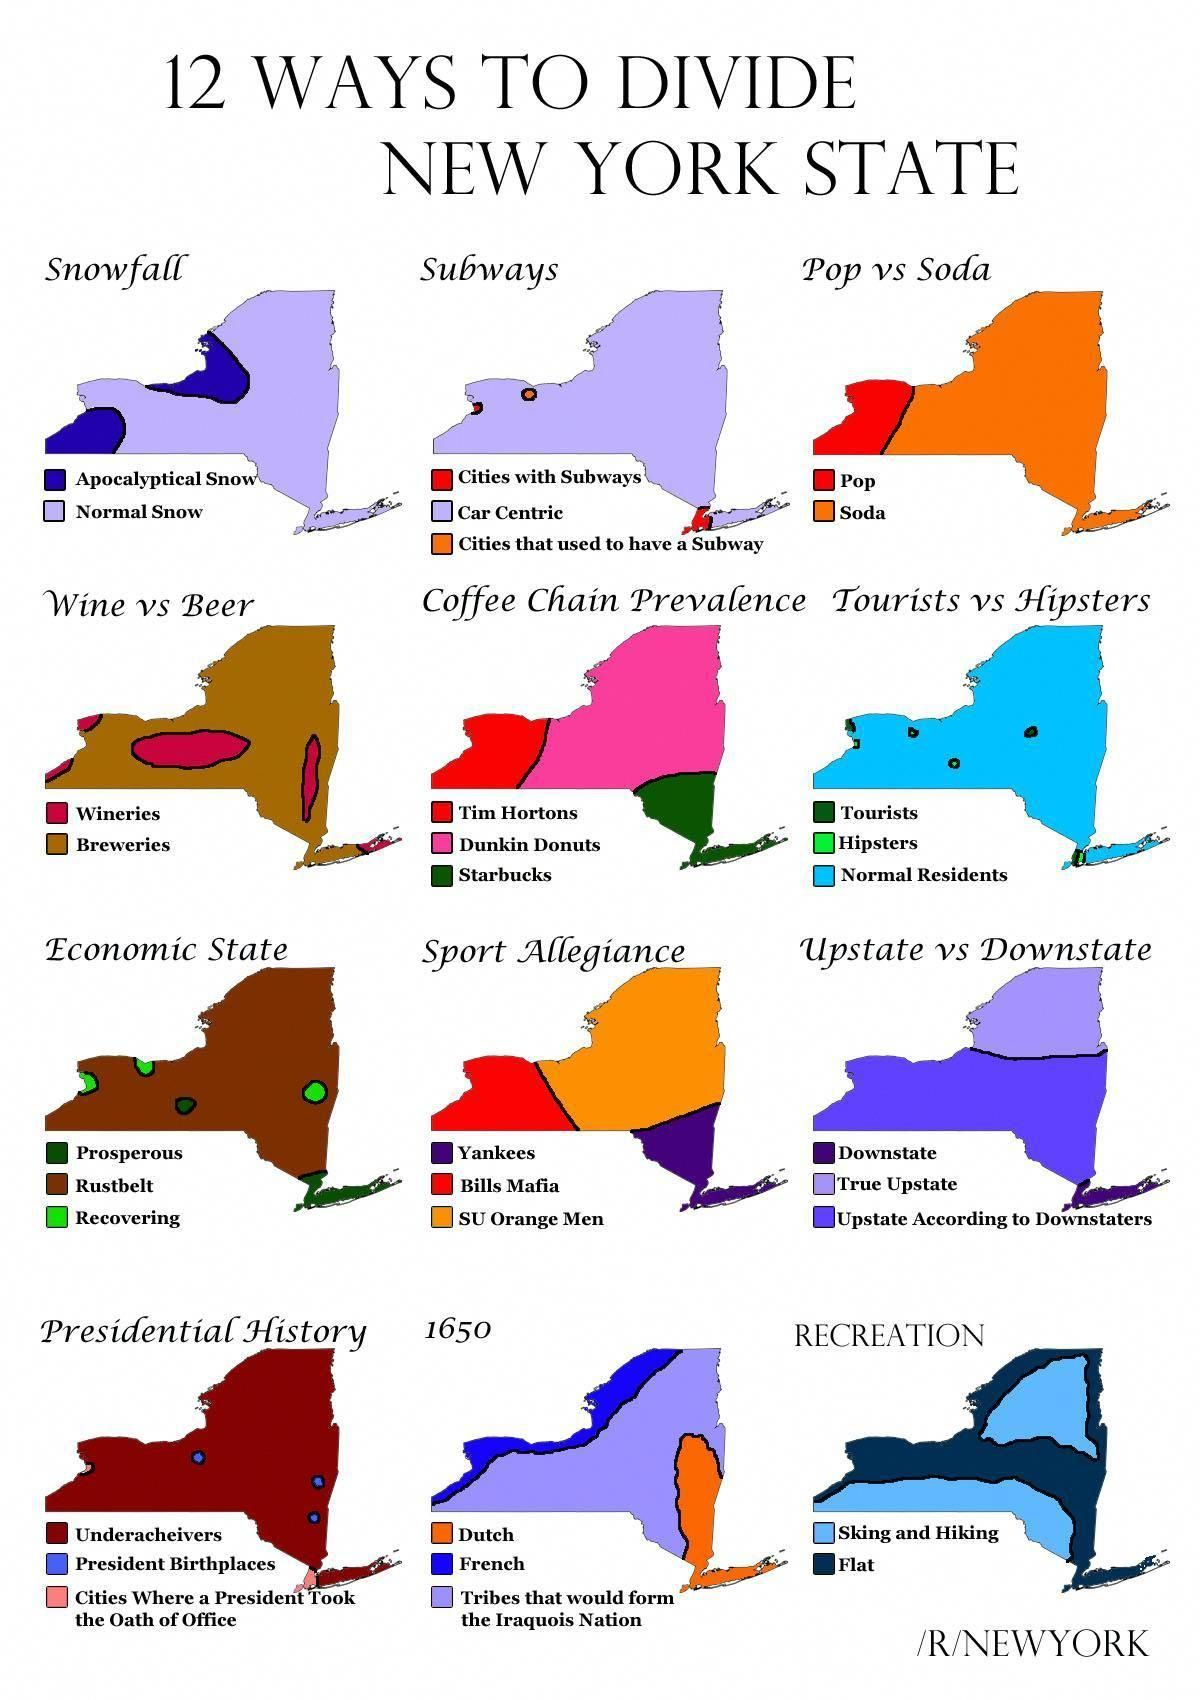 Map Of Upstate New York State.12 Ways To Divide New York State More Stereotype Maps